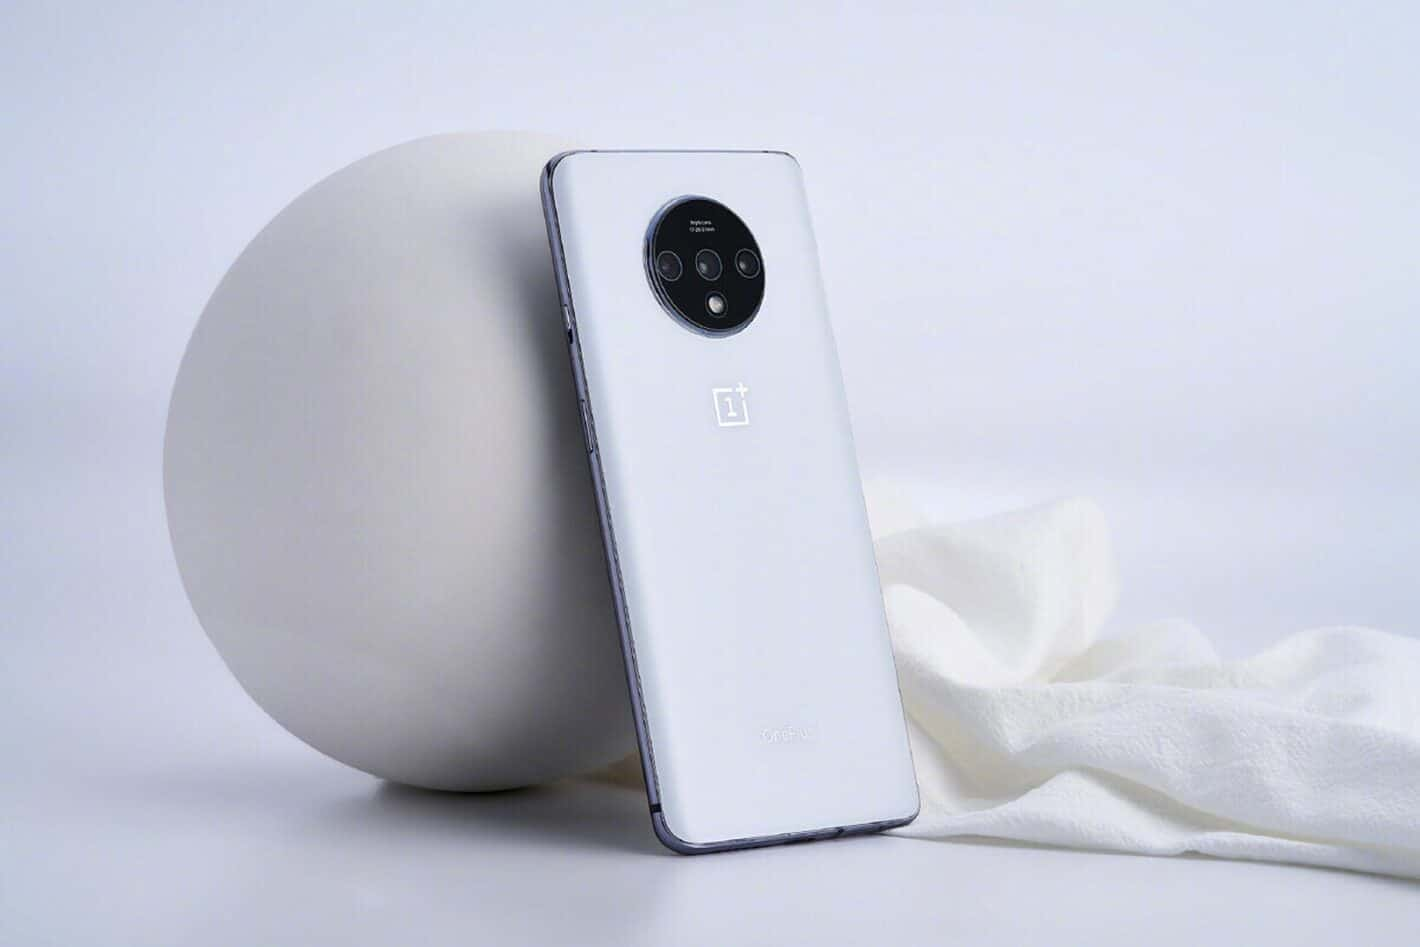 OnePlus 7T White image featured